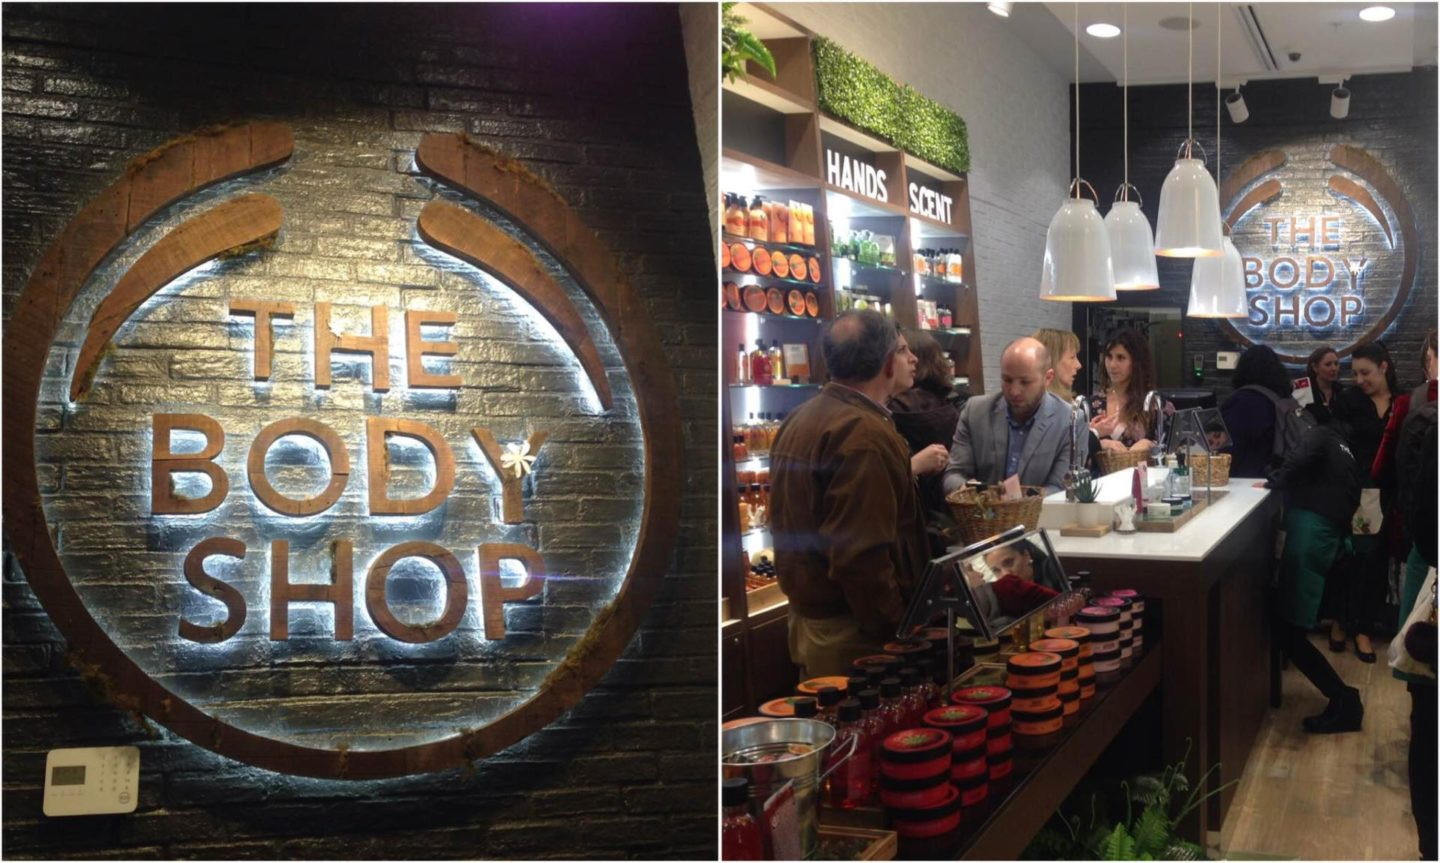 ¡The Body Shop ya está en Chile!